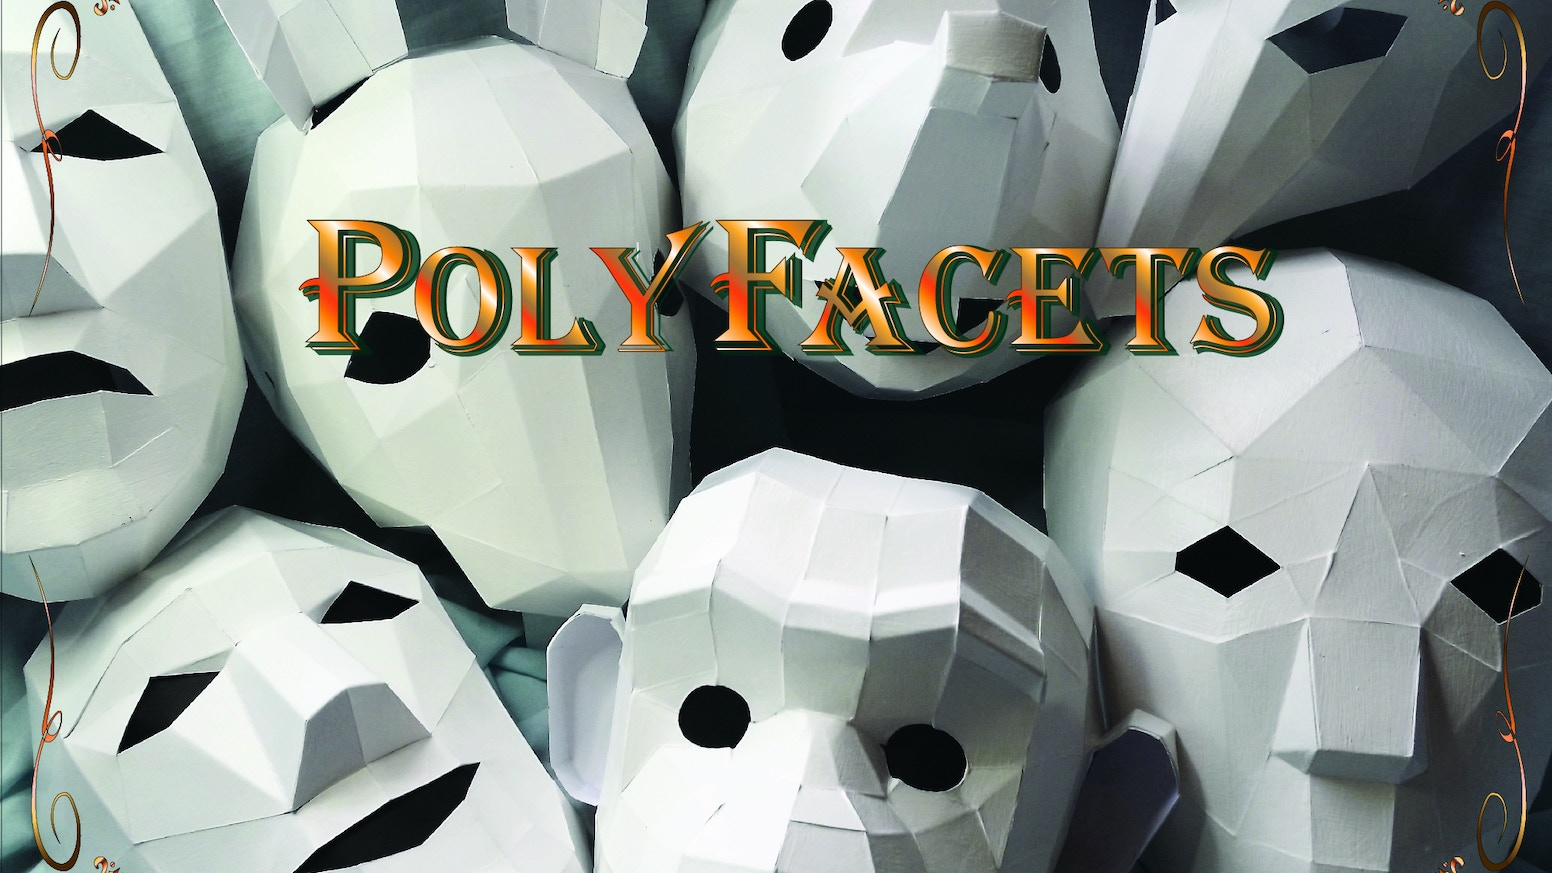 Polyfacets Craft Plans - a world of creation, using basic materials to make stunning, strong, waterproof masks. Get them now on Etsy.